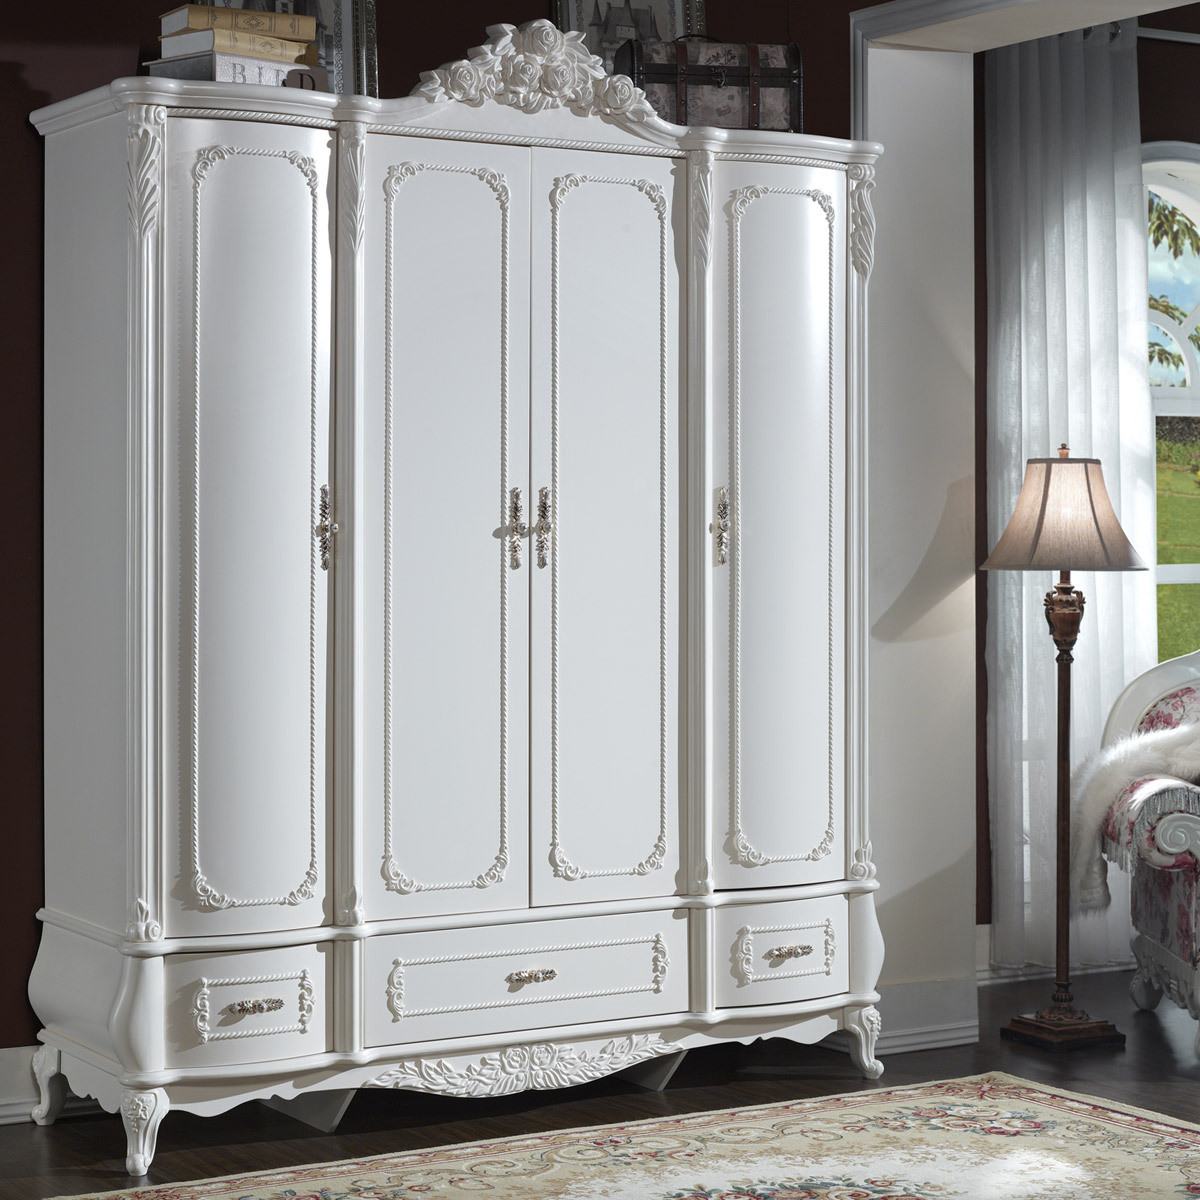 Wood Furniture Manufacturers: White Wooden Wardrobe Designs. Full resolution‎  portrait, nominally Width 1200 Height 1200 pixels, portrait with #70714D.